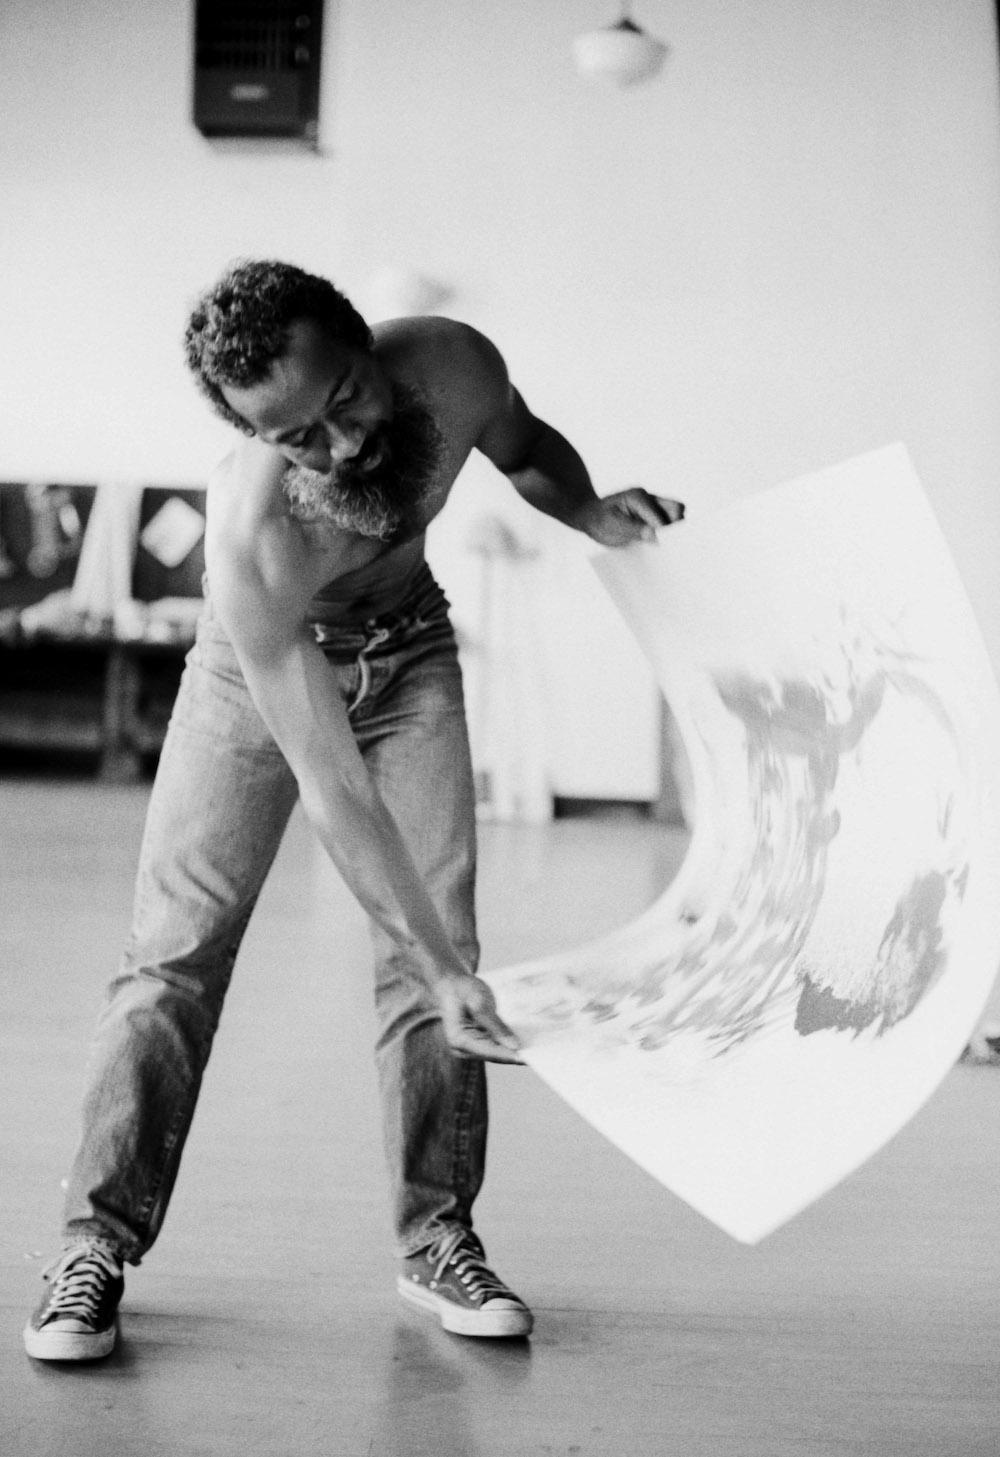 David Hammons making a body print, Slauson Avenue studio, Los Angeles, 1974, digital silver gelatin print, 41 × 51 cm. Courtesy: the artist and The Drawing Centre, New York